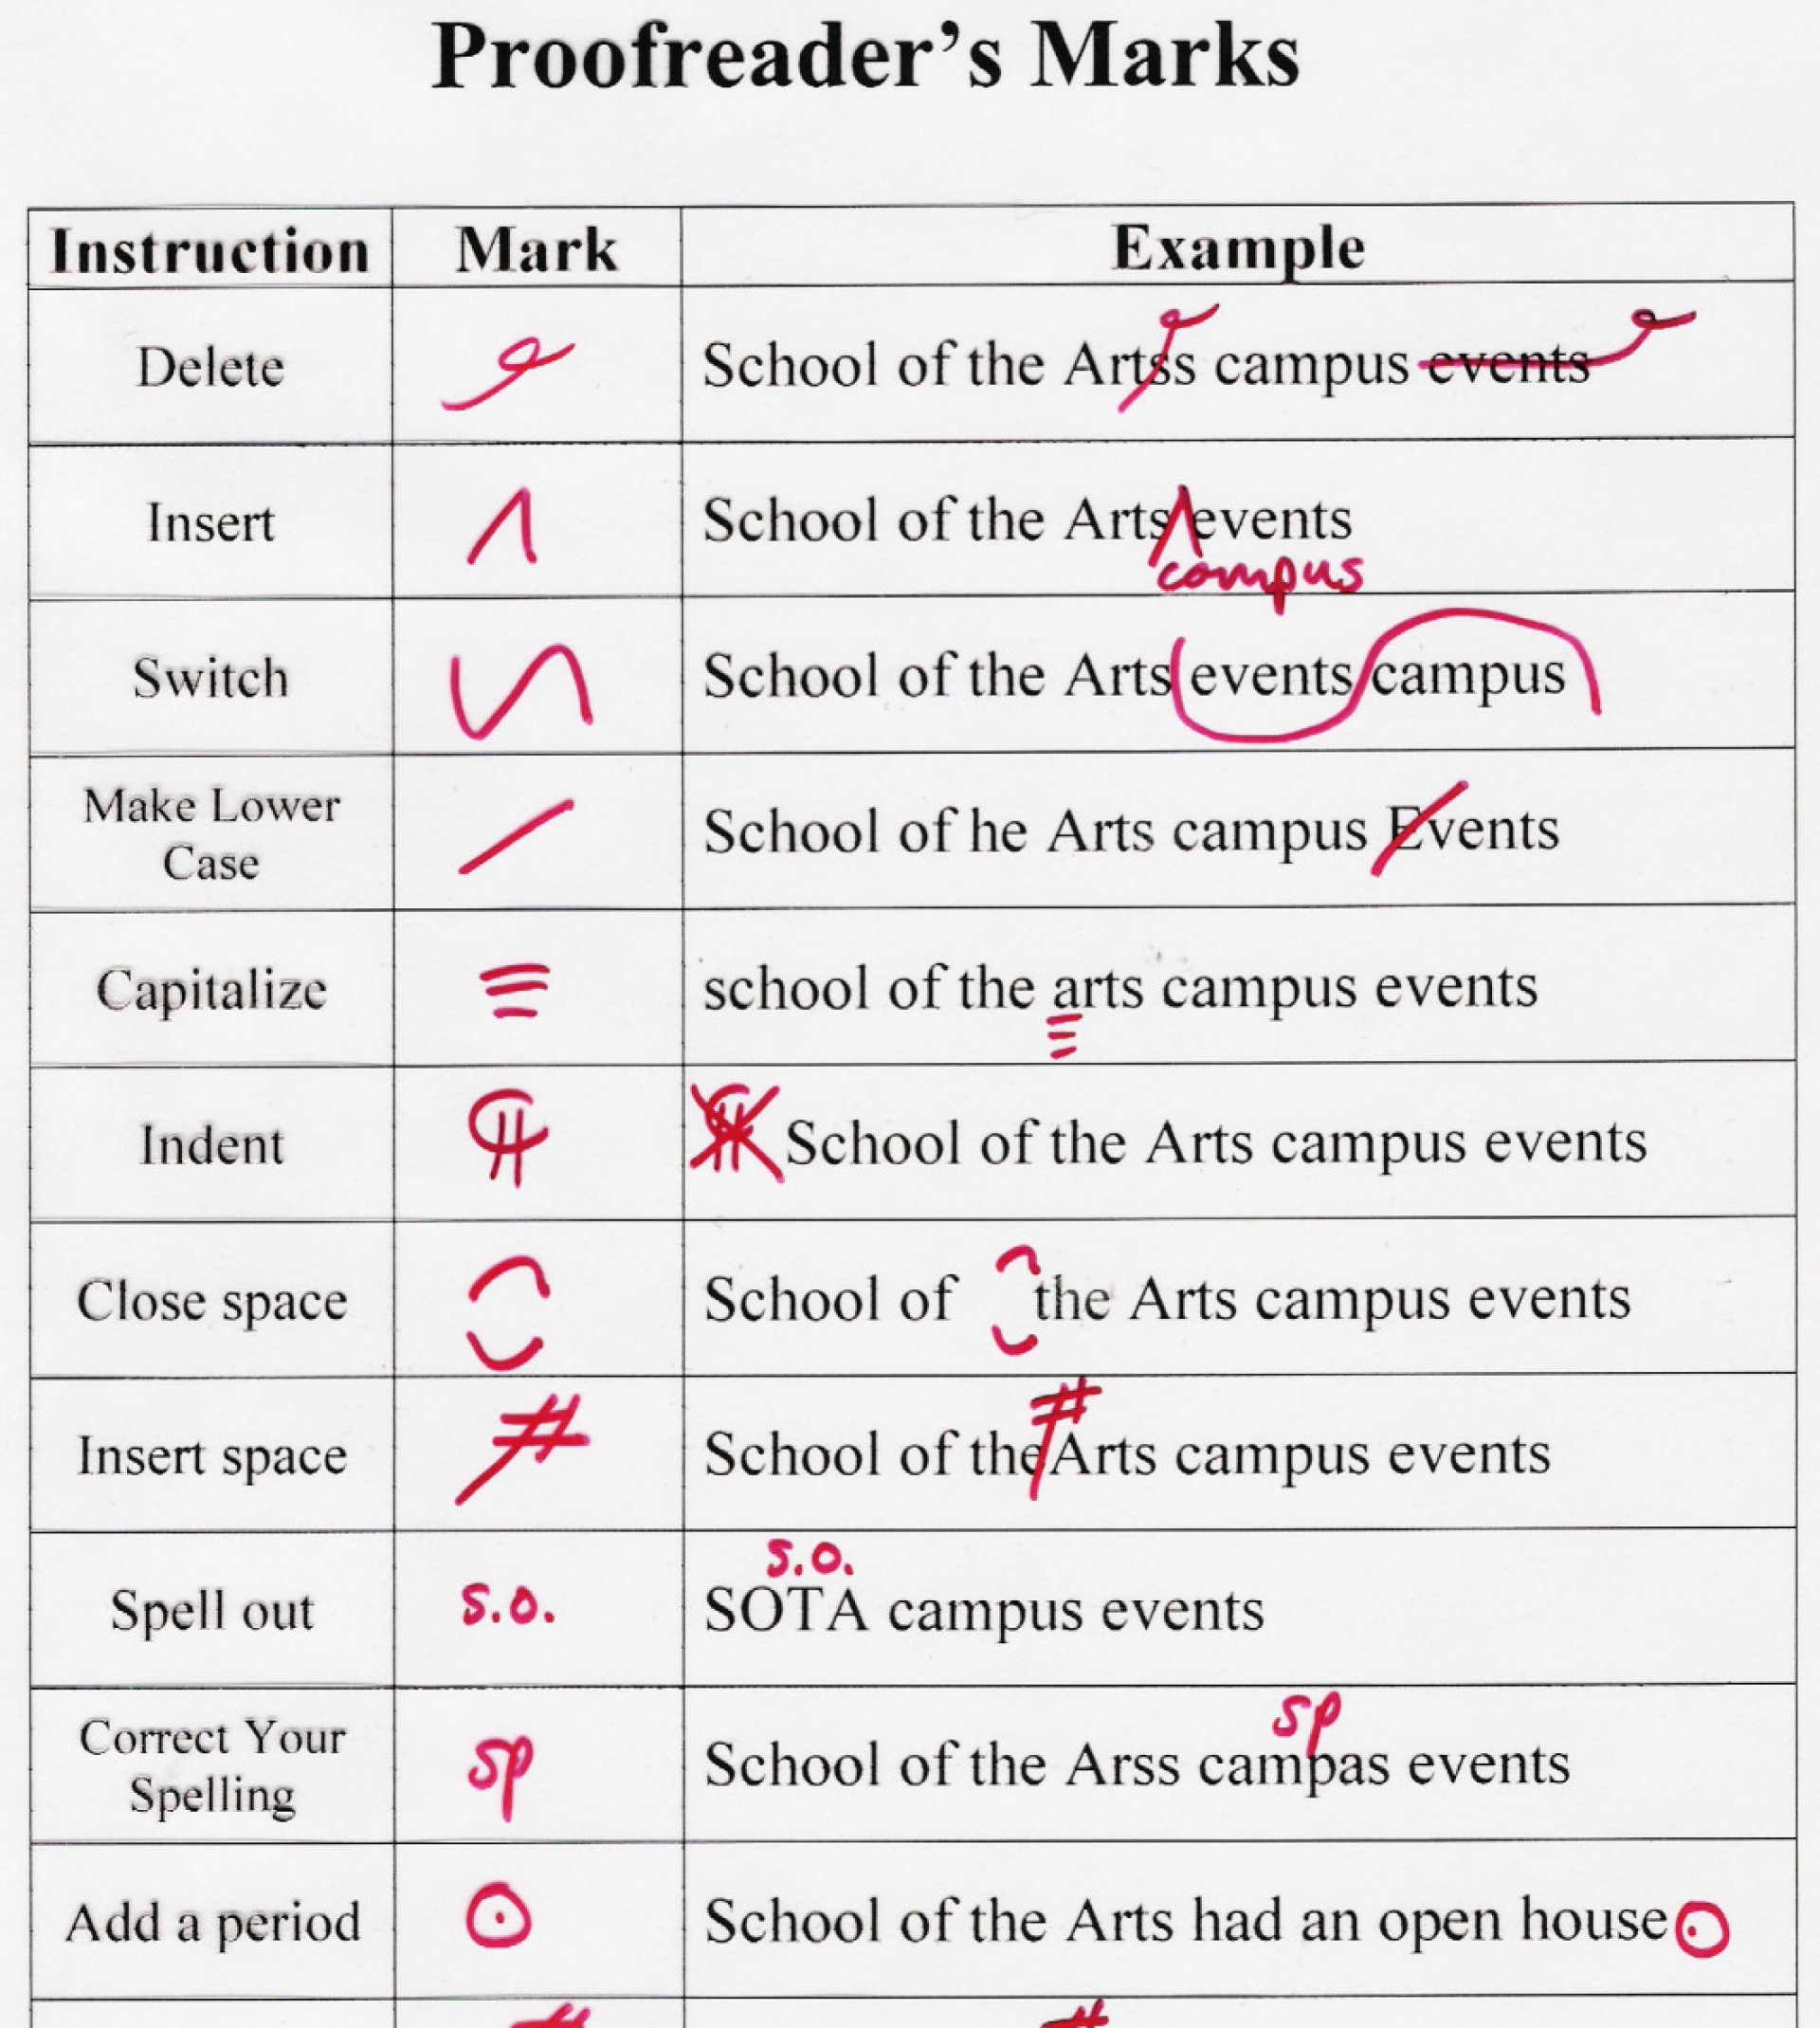 022 Essay Example Grammar Check My Images About Grammer Infographics College Checker Surprising Your For Mistakes Free Correct 1920